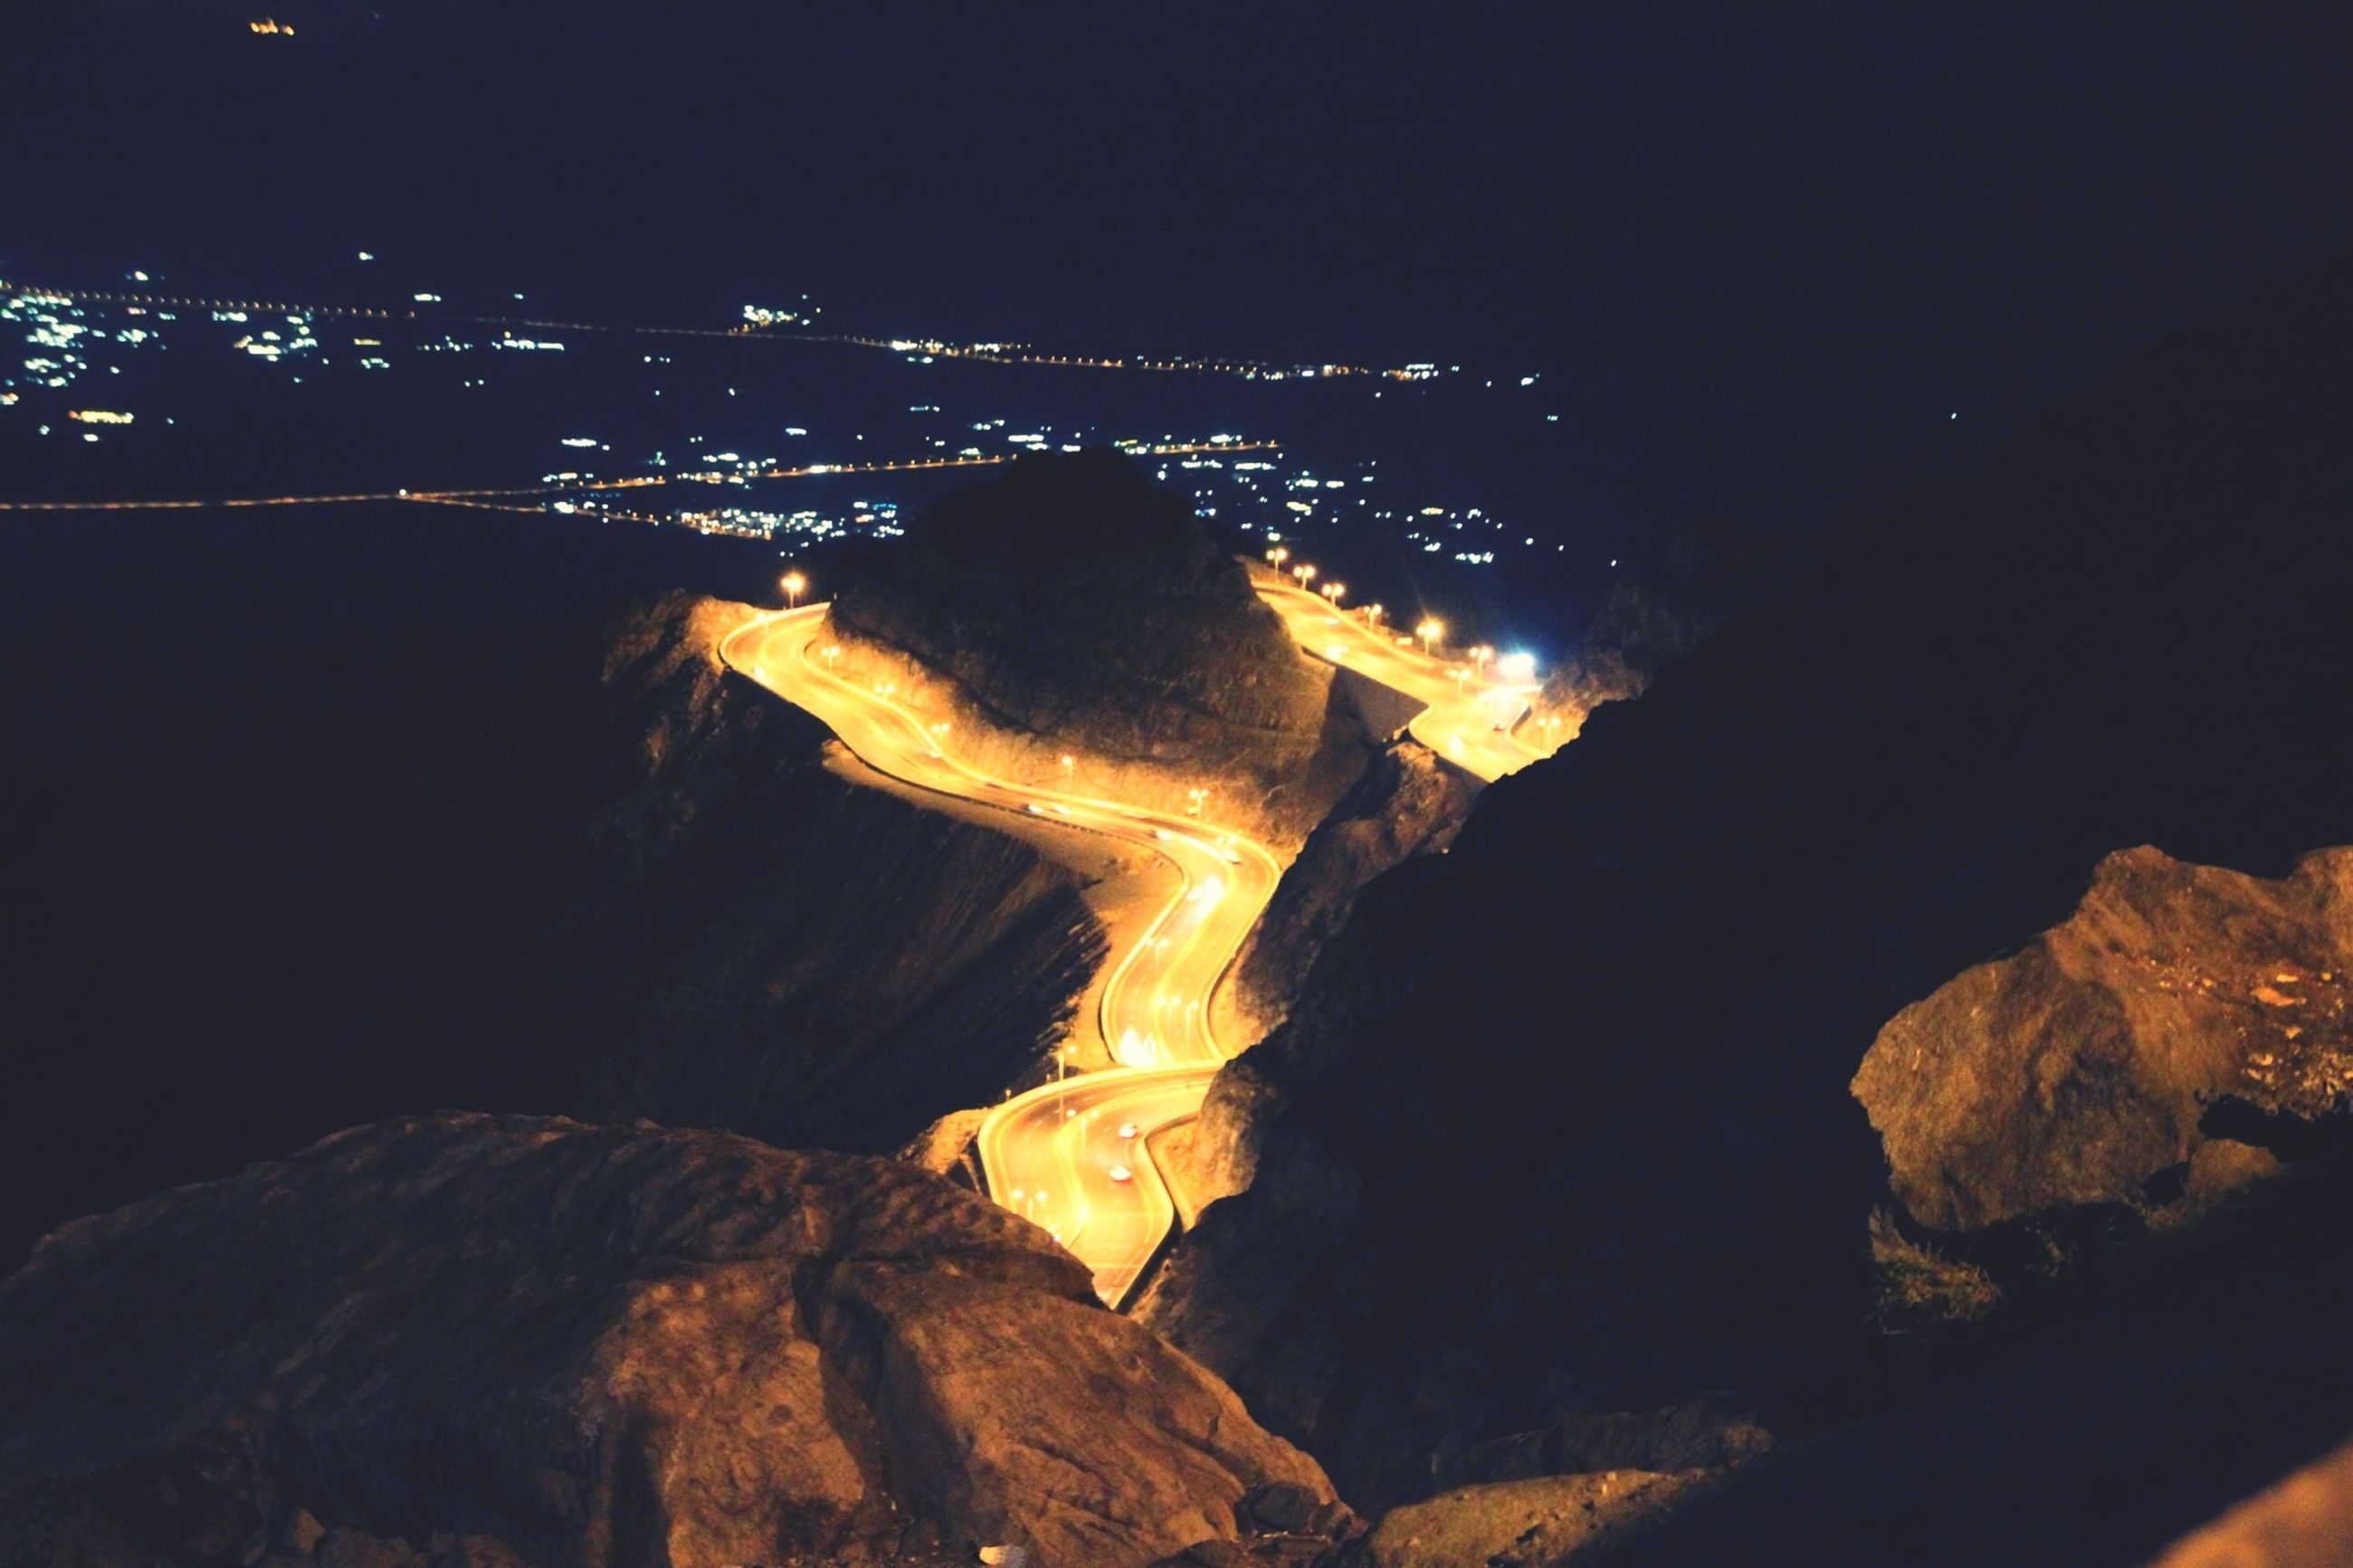 night, illuminated, high angle view, cityscape, city, mountain, built structure, building exterior, architecture, aerial view, landscape, copy space, dark, clear sky, outdoors, scenics, no people, nature, sky, mountain range